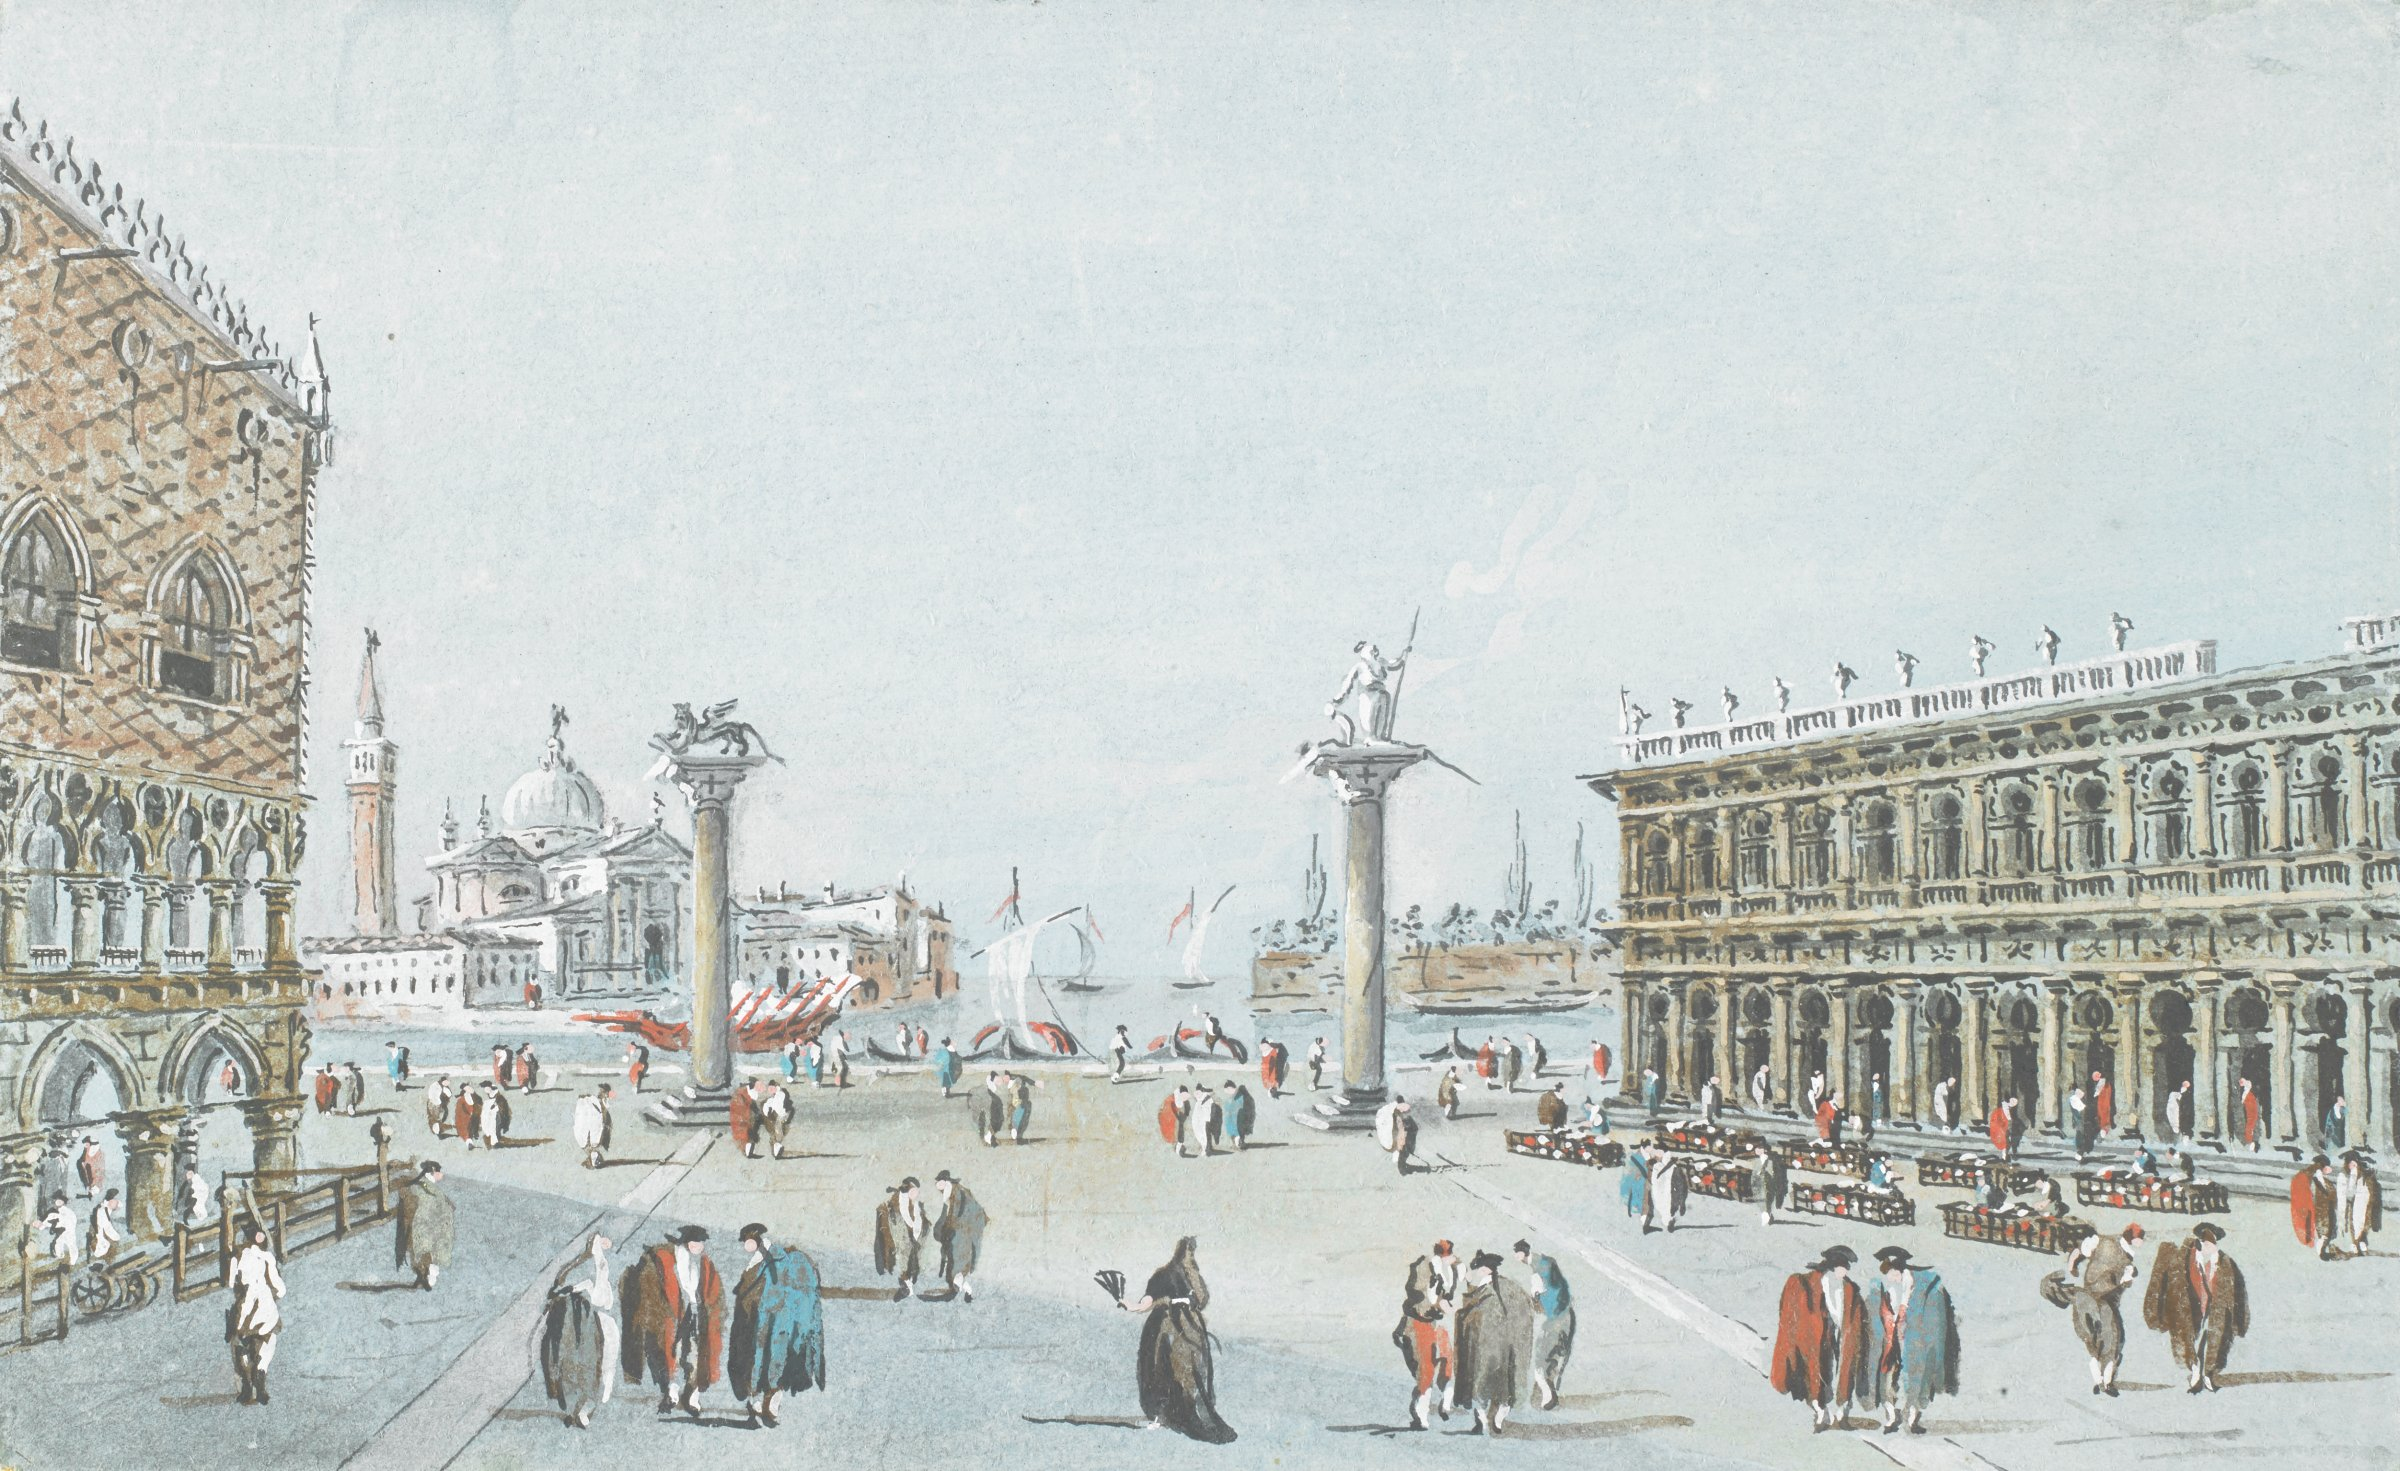 Scene of a city square in Italy. Singular figures and groupings of two and three figures are scattered throughout the square. Between two far pillars decorated with sculptural elements is a view of water with ships. In the background on the right is a basilica.